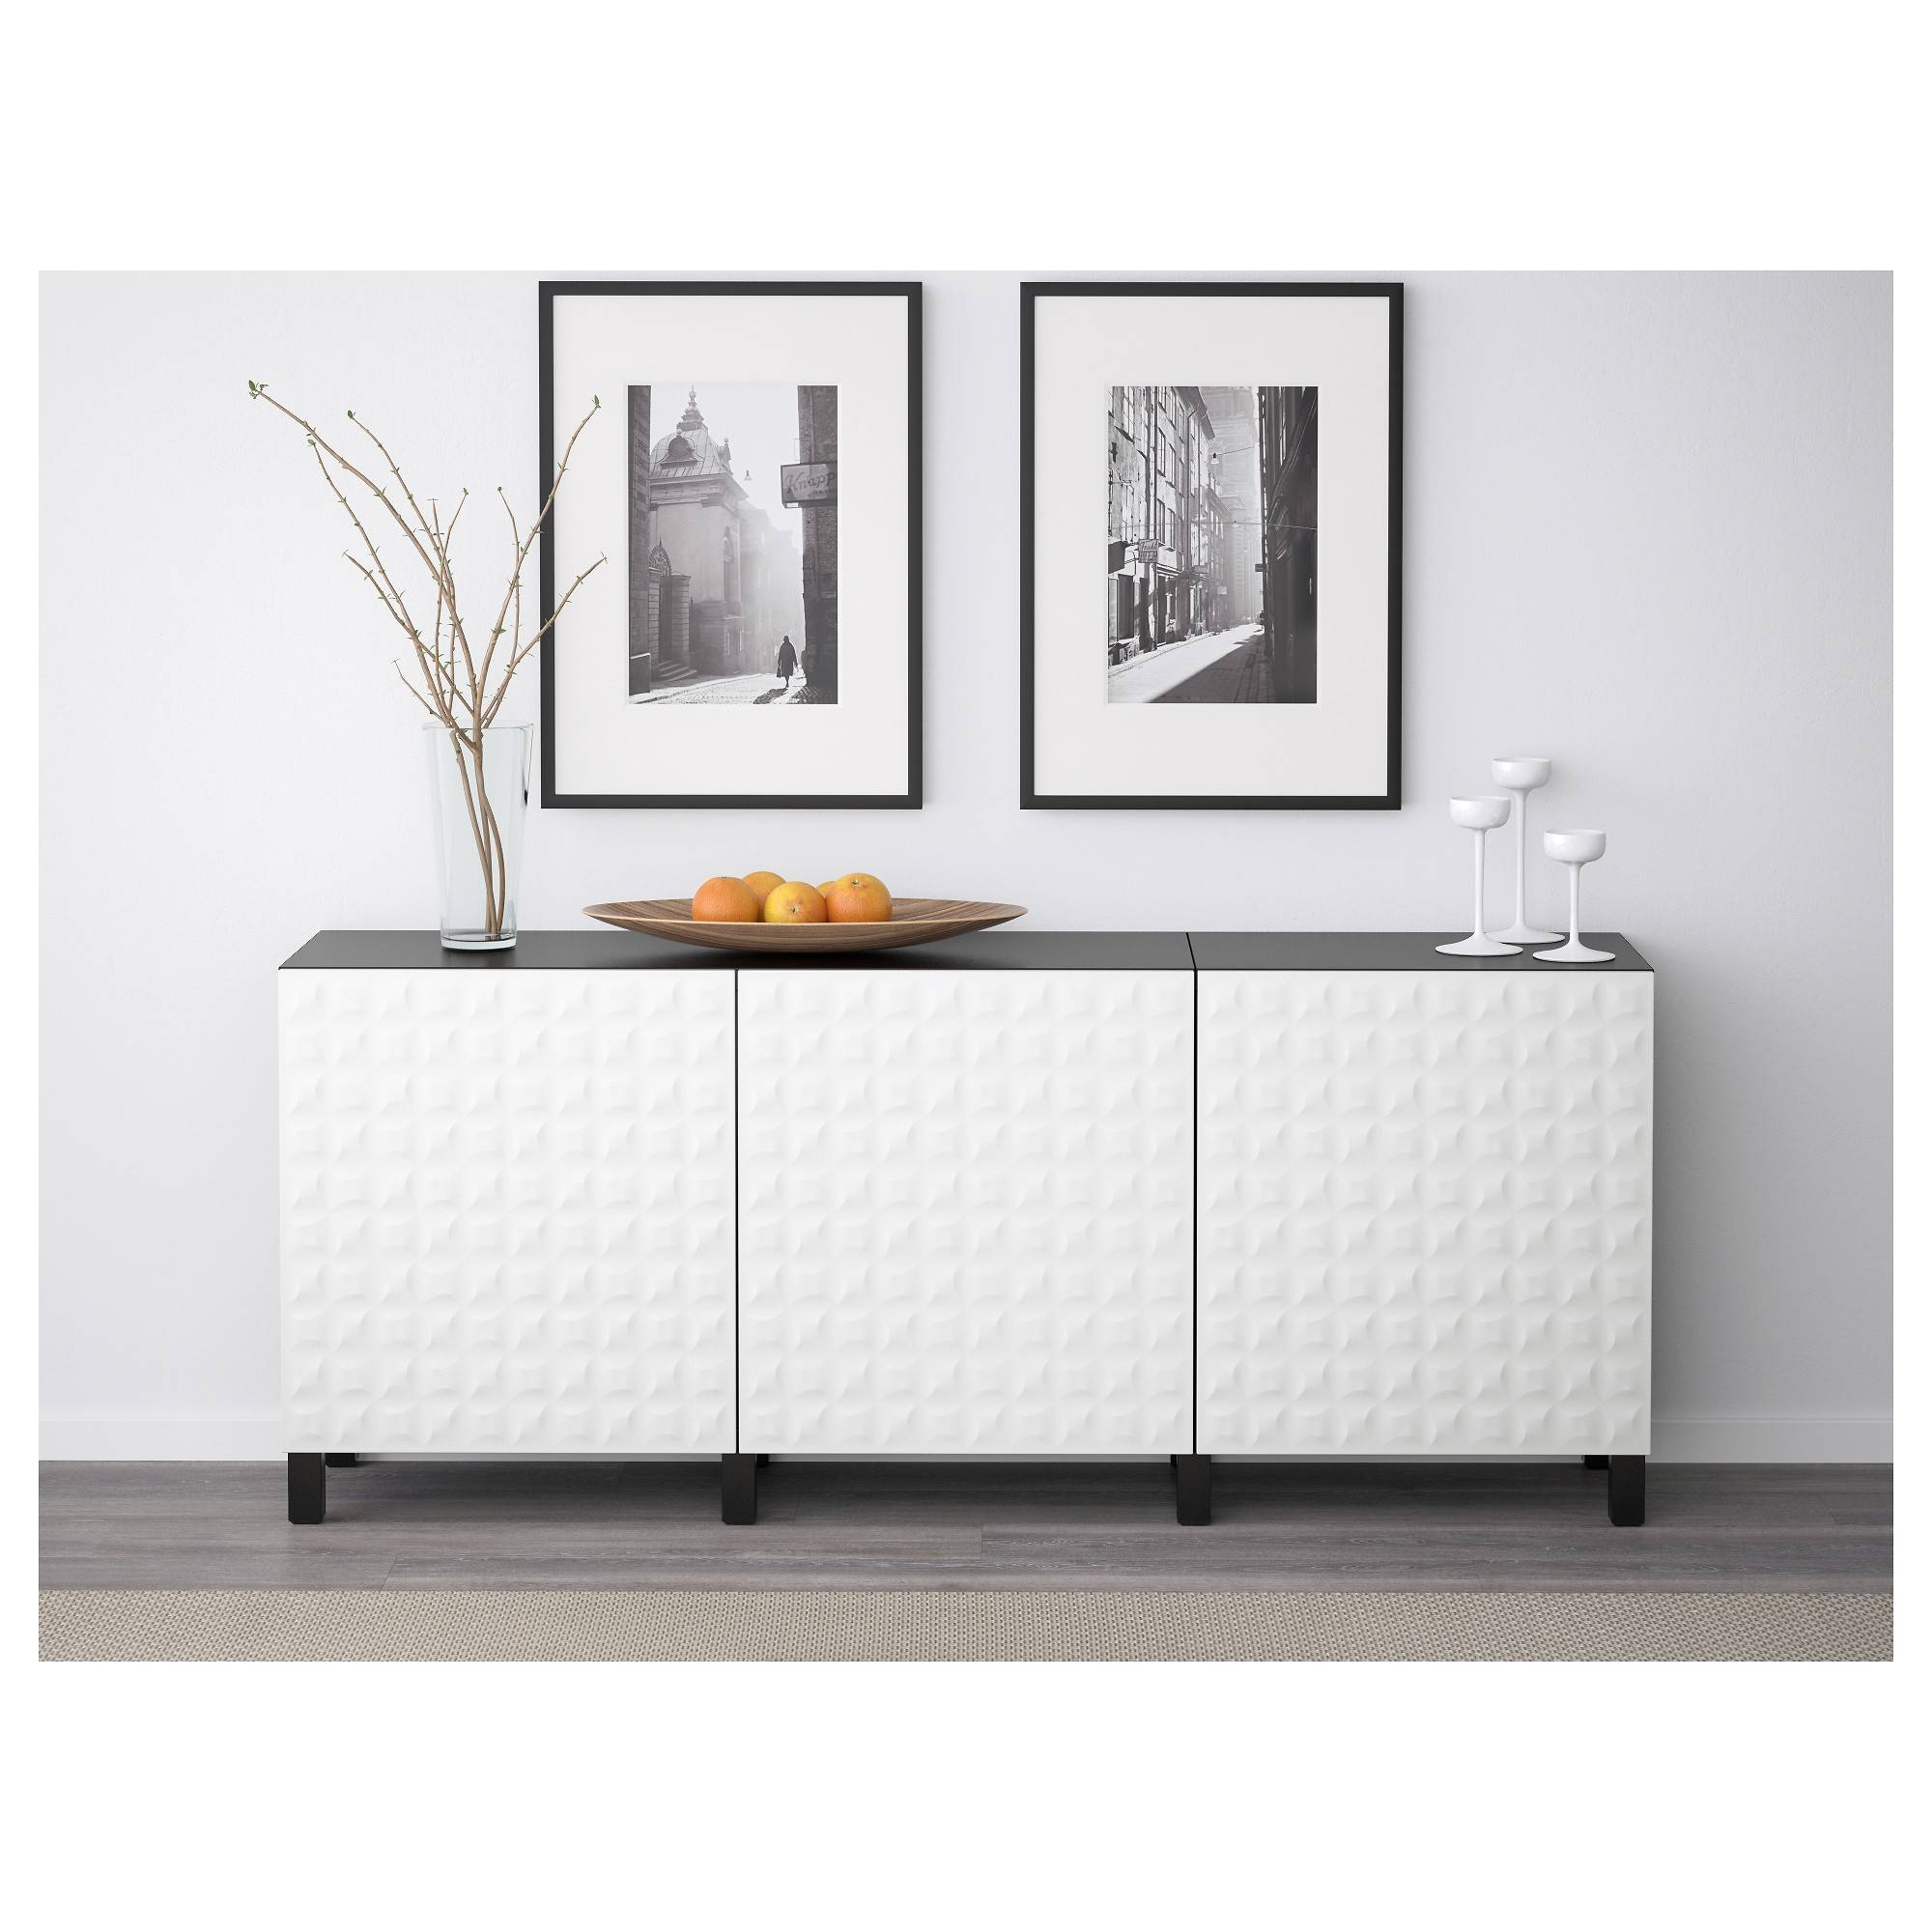 Bestå Storage Combination With Doors - White/selsviken High-Gloss pertaining to Ikea Besta Sideboards (Image 5 of 15)